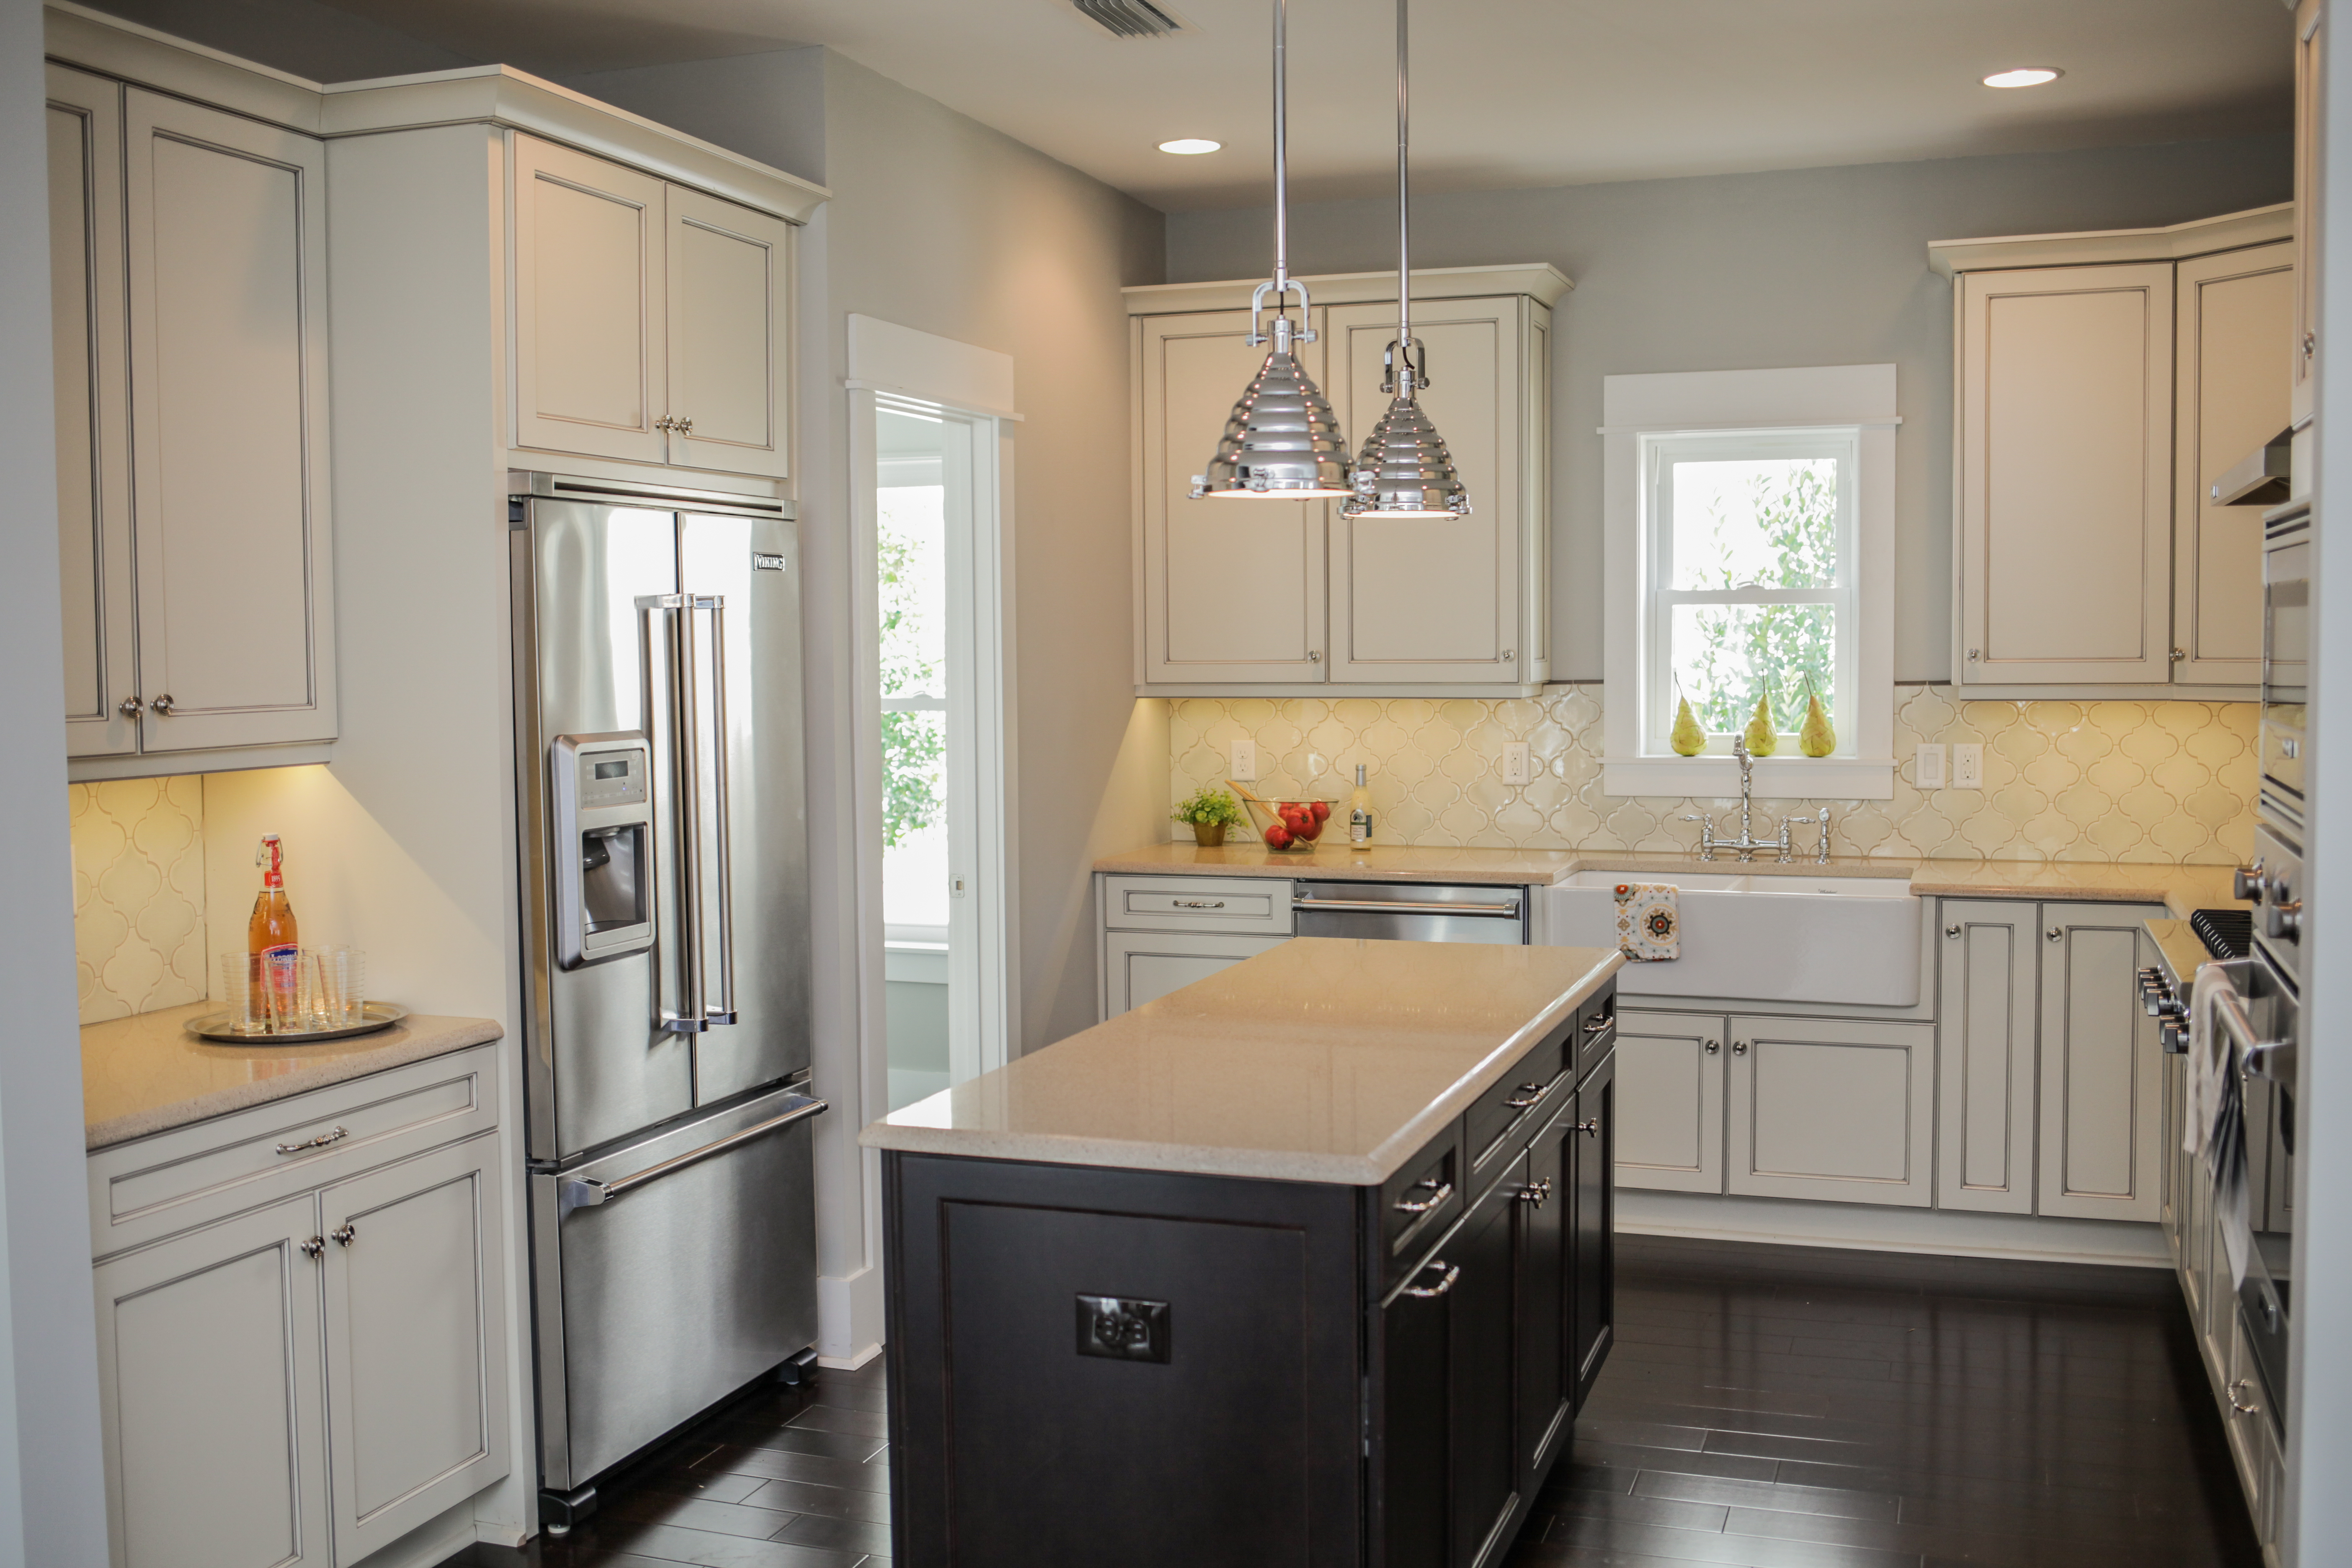 Choosing Fixtures for Your Home